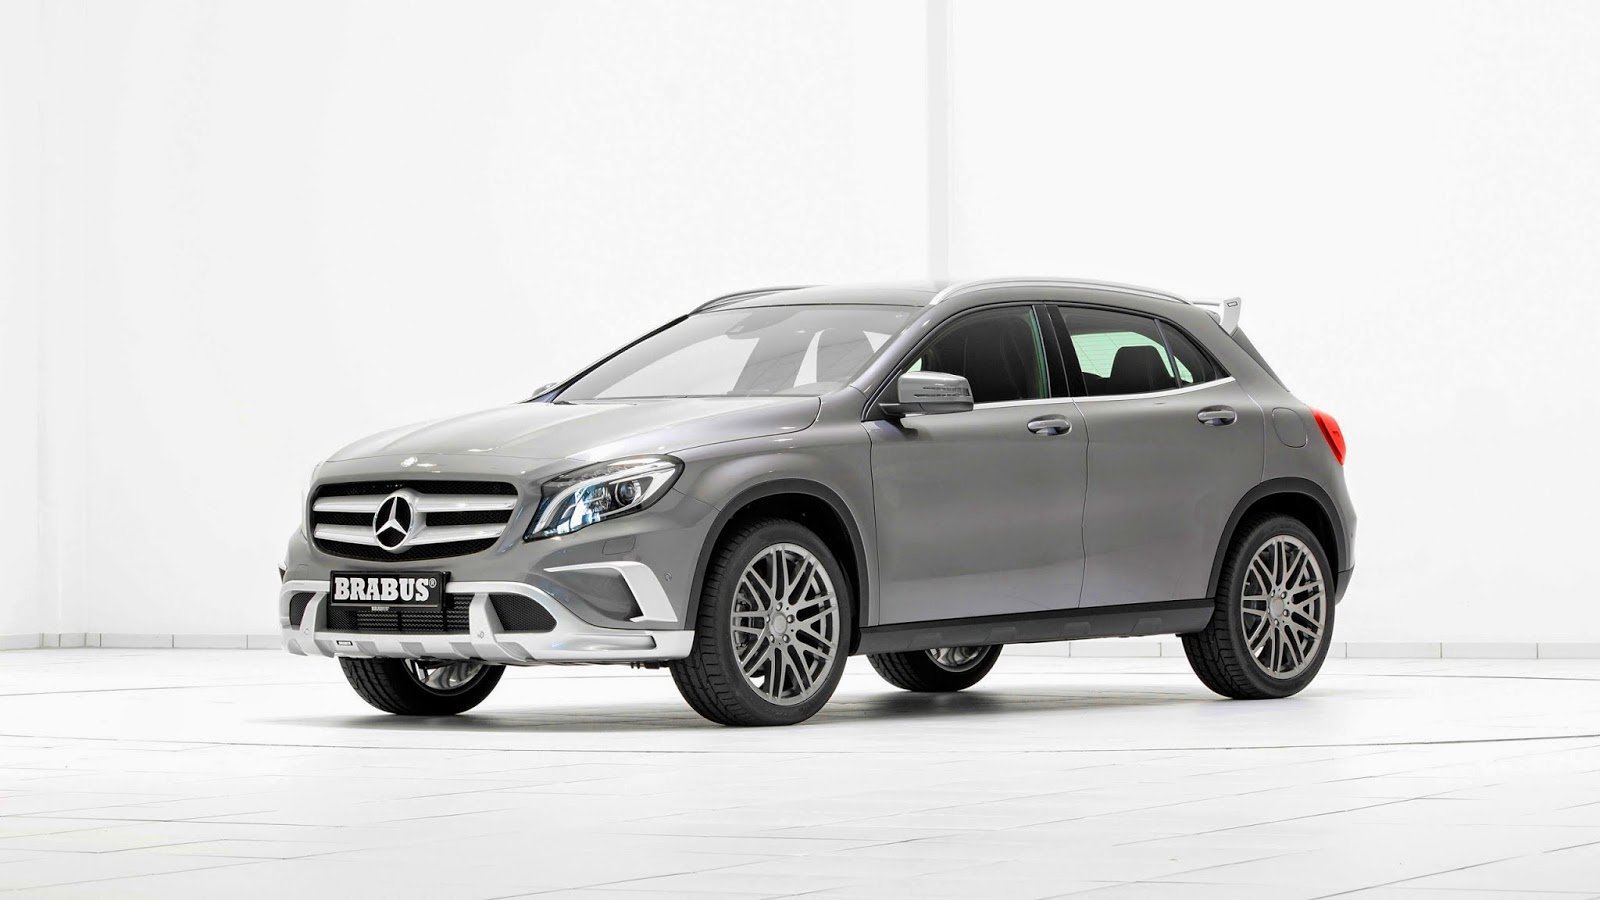 brabus mercedes benz classe gla 2014 carwp. Black Bedroom Furniture Sets. Home Design Ideas